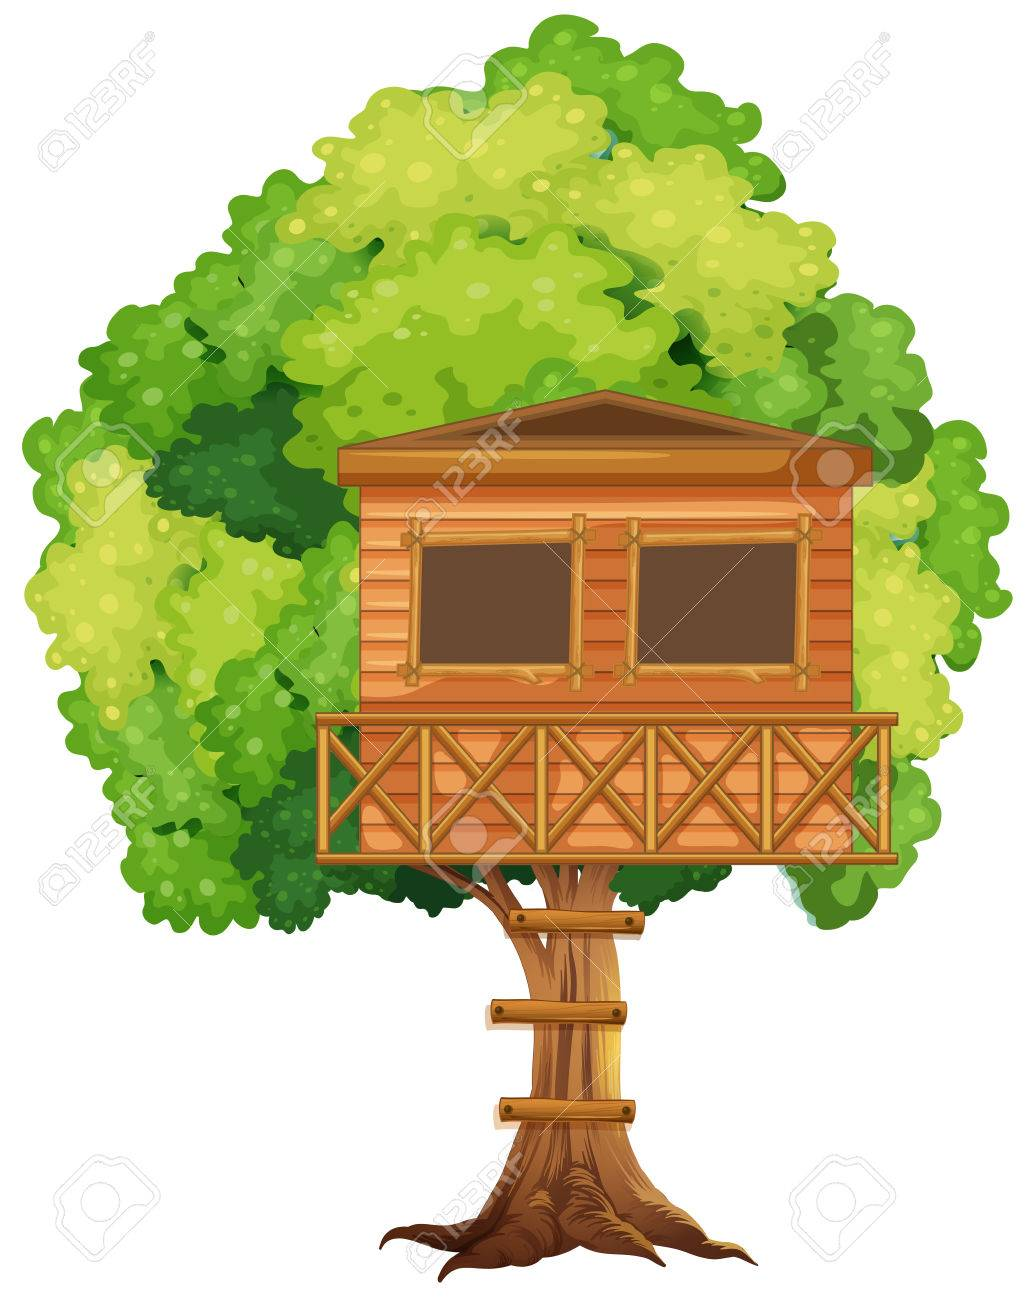 One treehouse in the tree illustration.